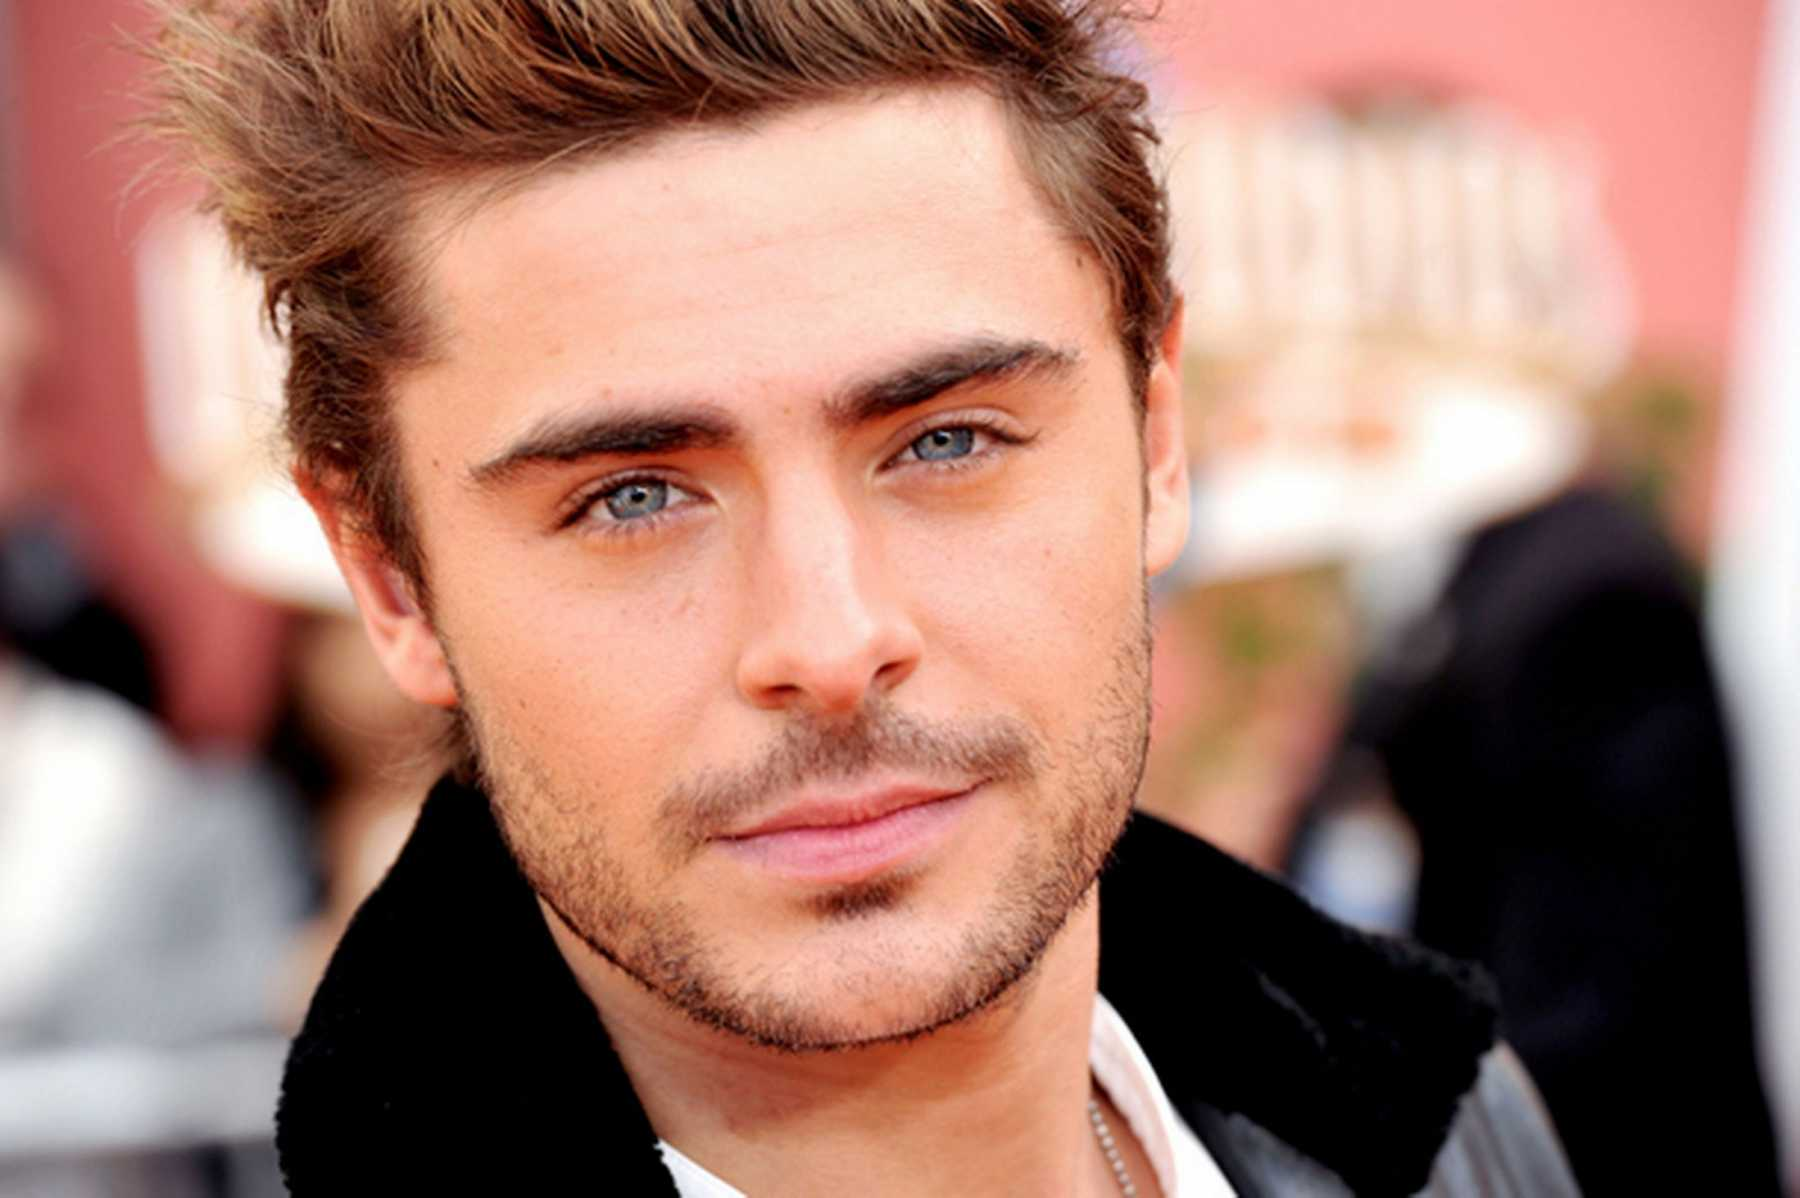 Zac Efron Gets His Groove On In New 'We Are Your Friends' Trailer | Zac Efron